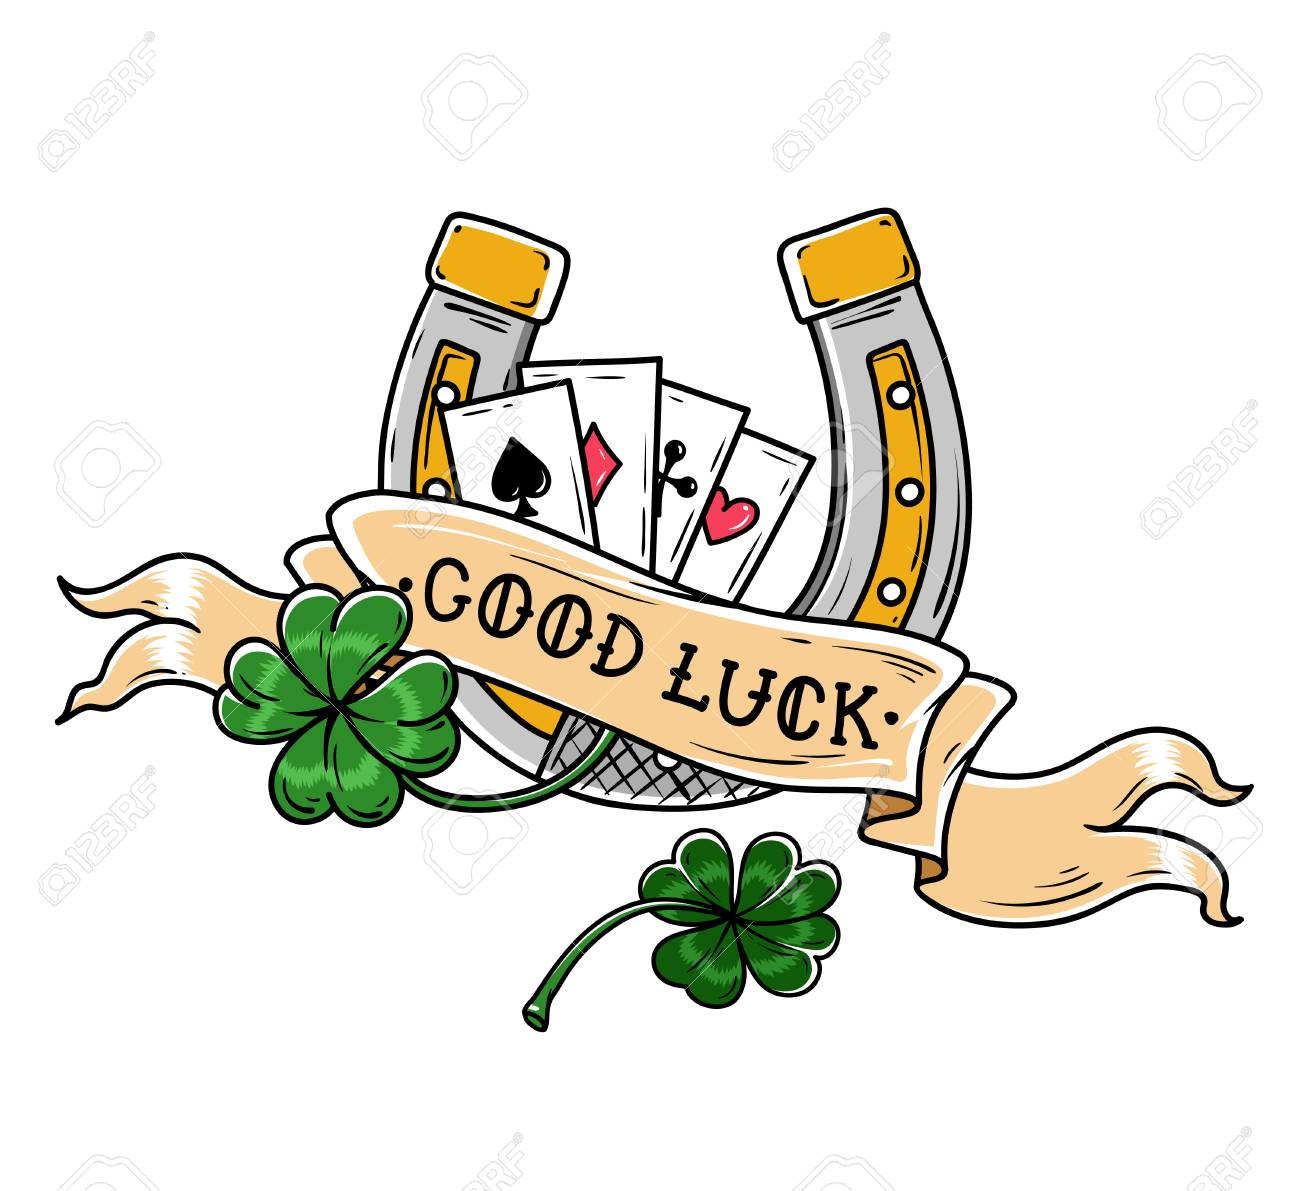 Tattoo Horseshoe Four Leaf Clover And Playing Cards Good Luck Royalty Free Cliparts Vectors And Stock Illustration Image 95030709